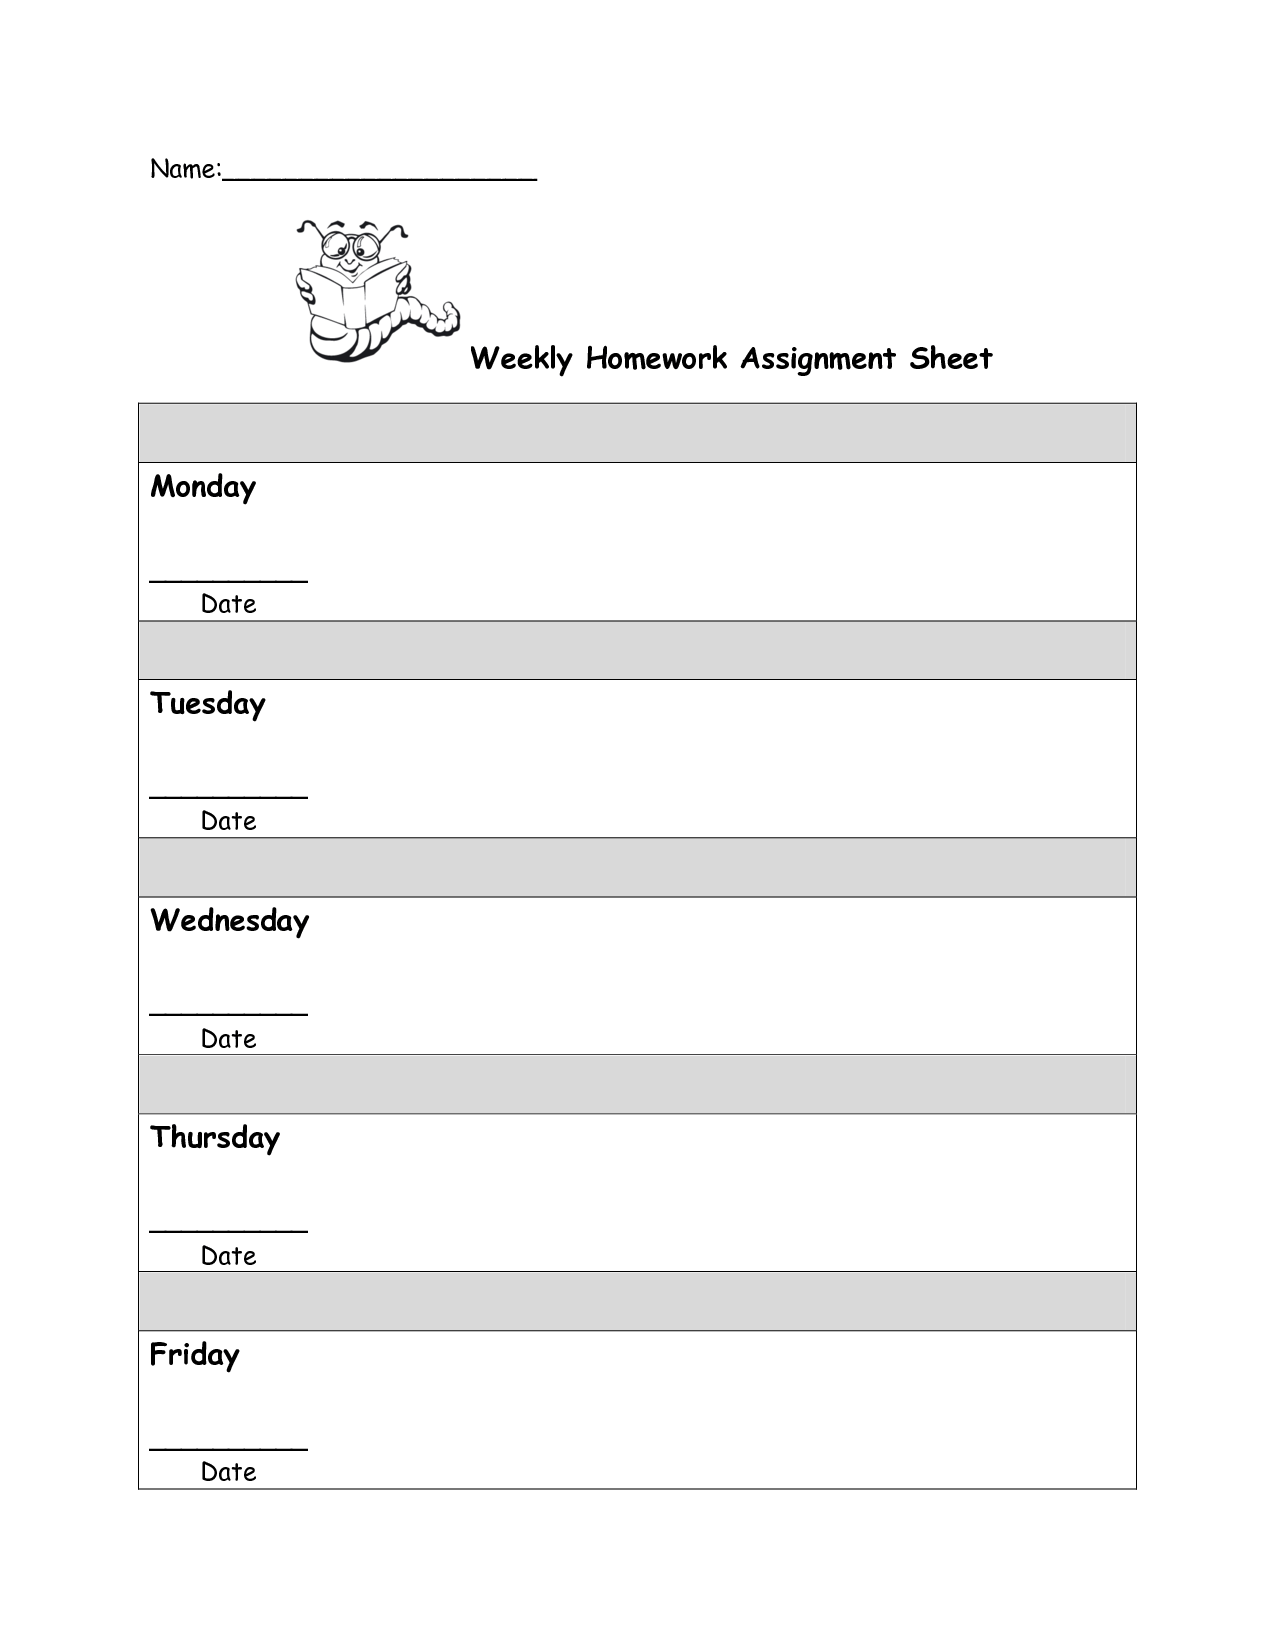 Daily Homework Sheet